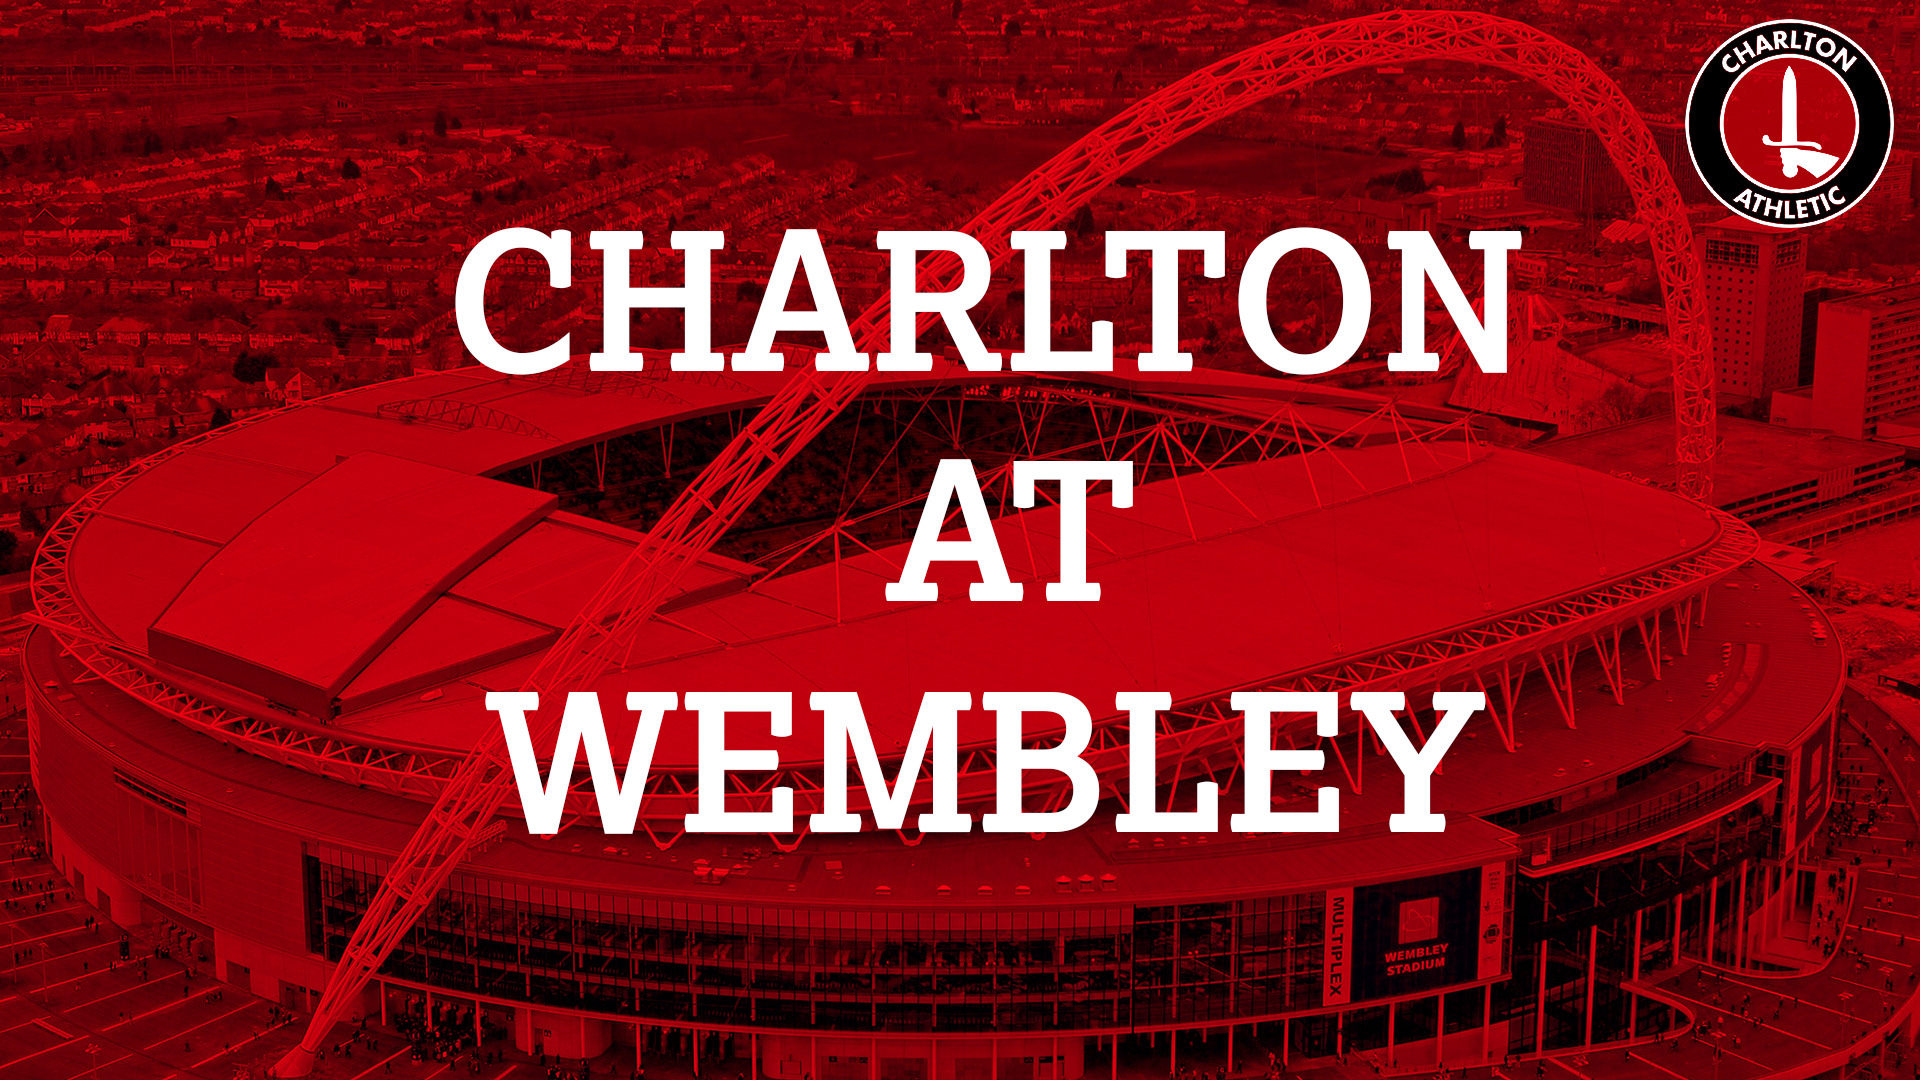 The Final Countdown: Charlton at Wembley